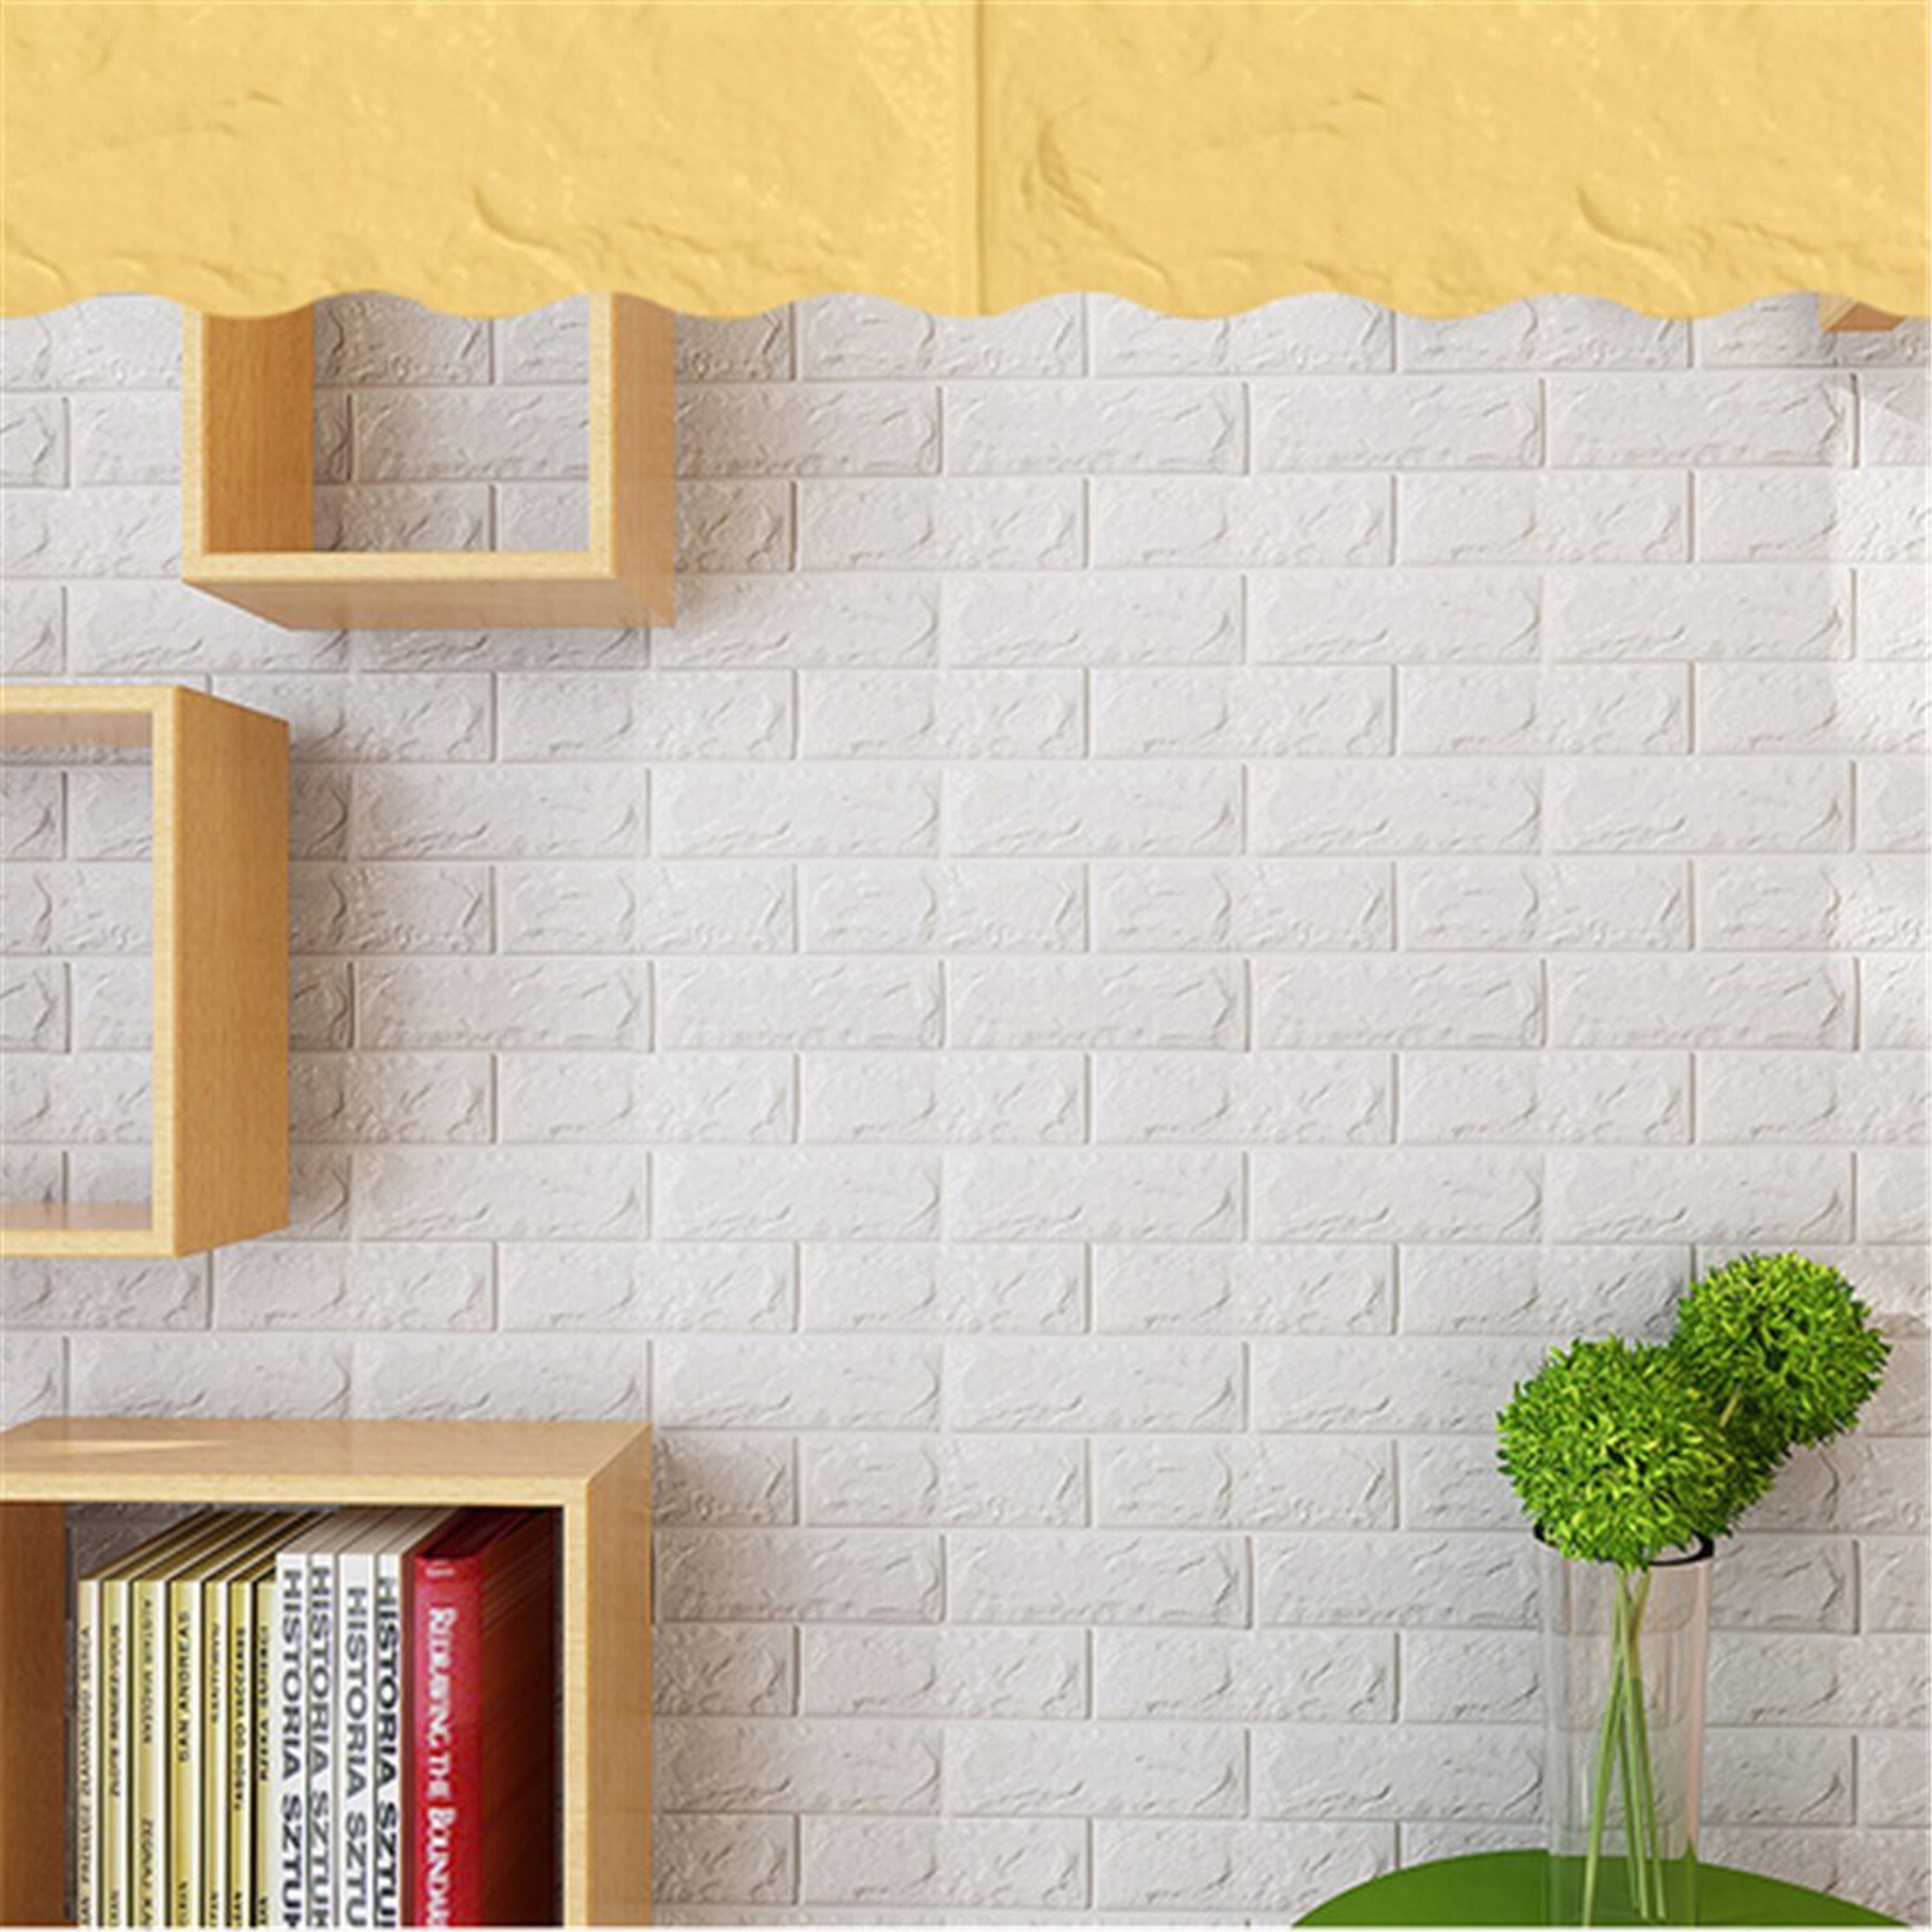 NK HOME Peel and Stick 3D White Brick Wall Stickers Panels Wallpaper  Bedroom Living Room Modern Decor Decal Accent Sofa Background TV Walls 5  Piece